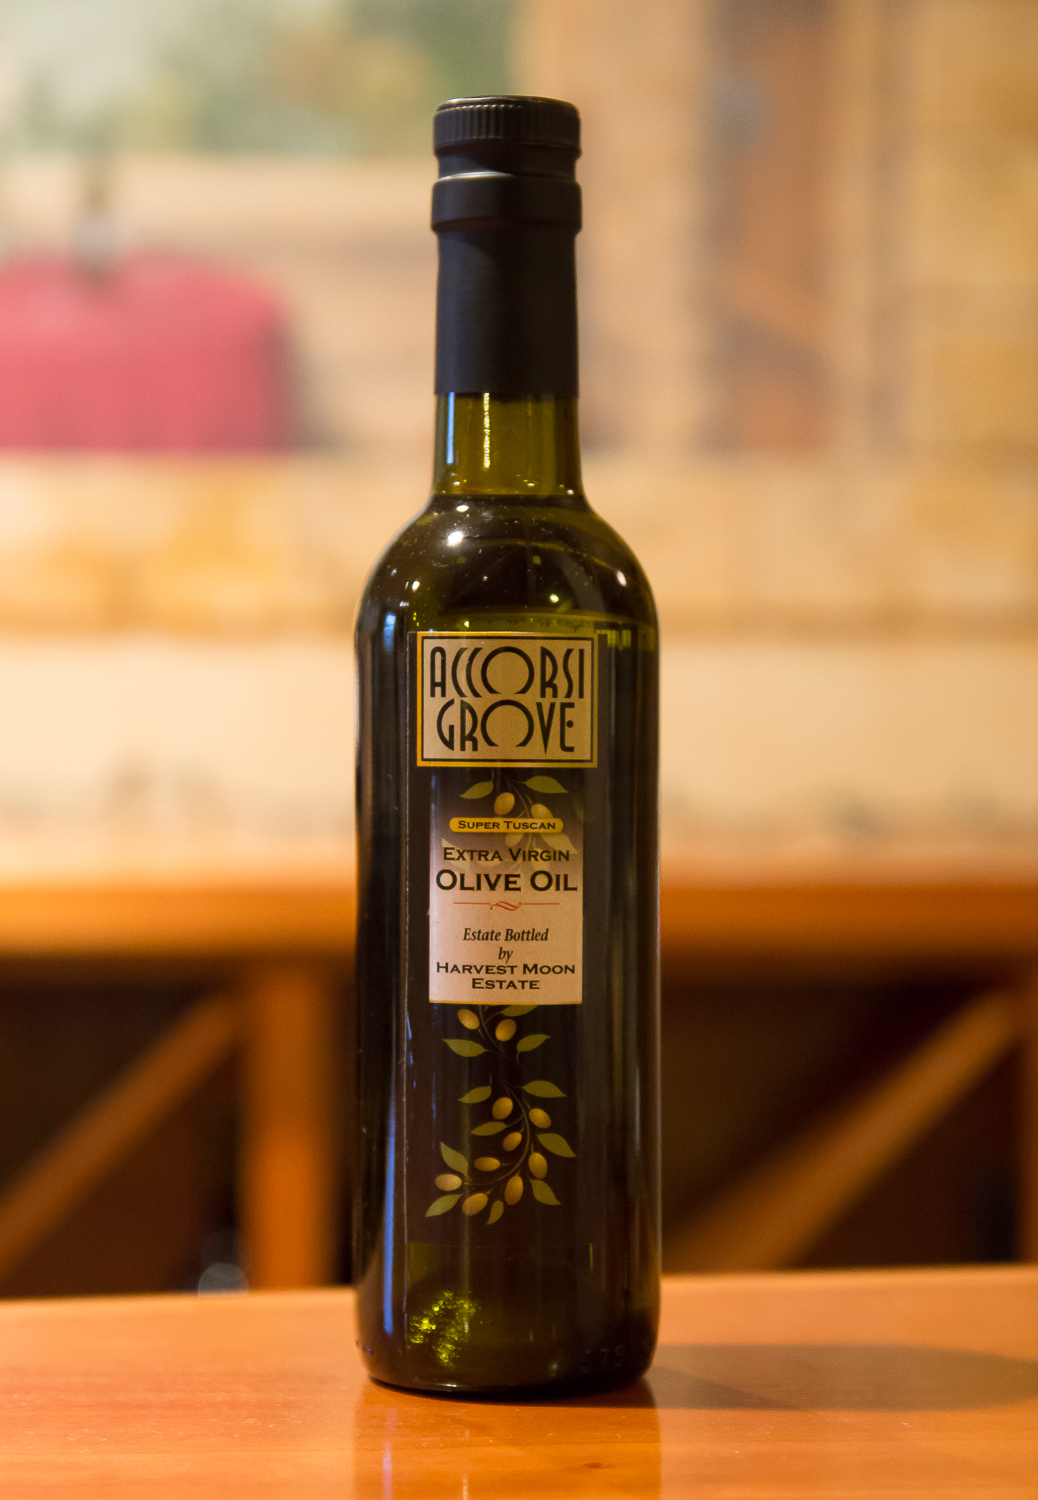 Accorsi Grove Estate Olive Oil